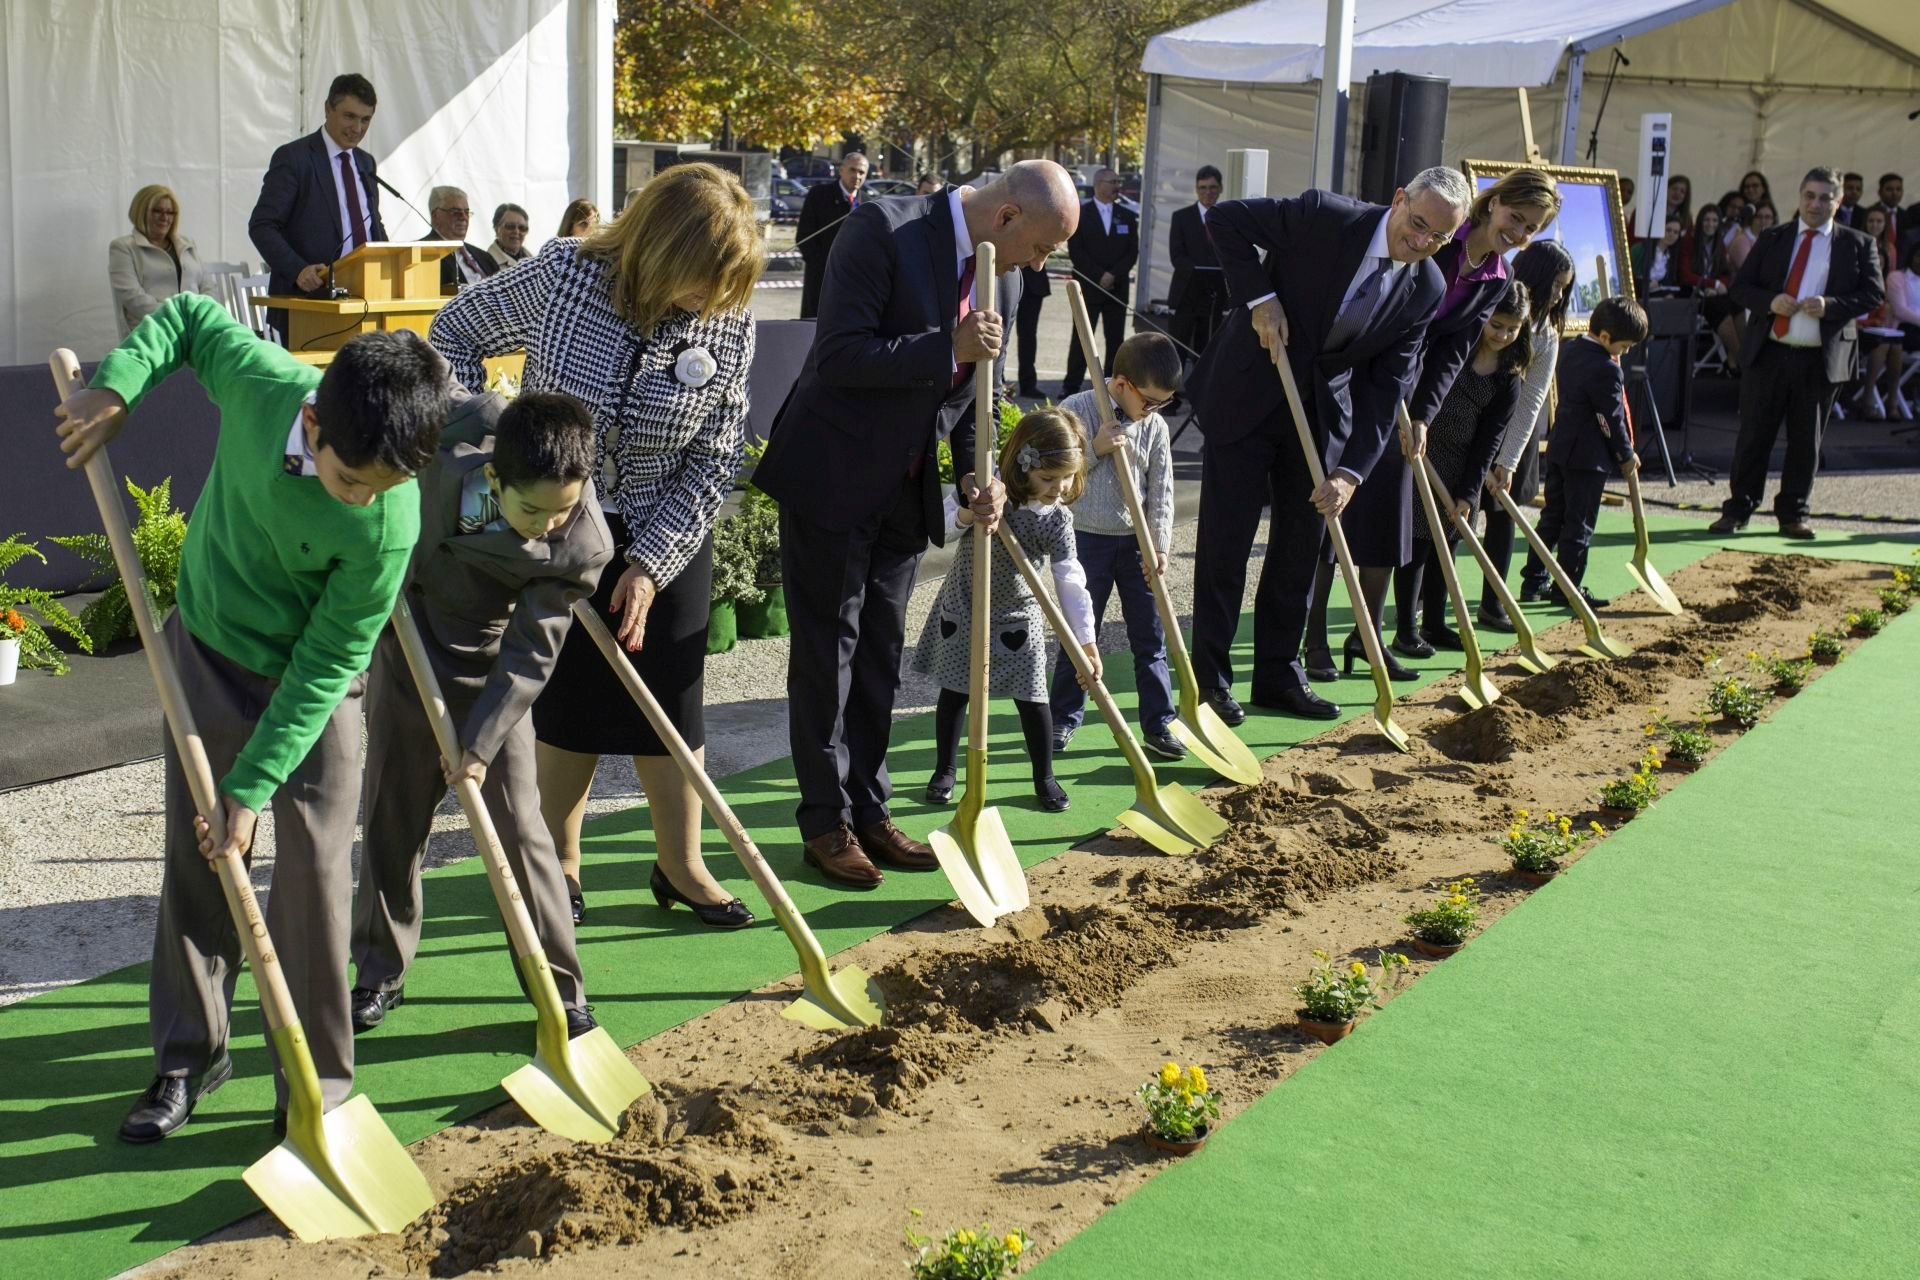 Children join other church members and leaders to break ground as part of the Lisbon Portugal Temple groundbreaking.